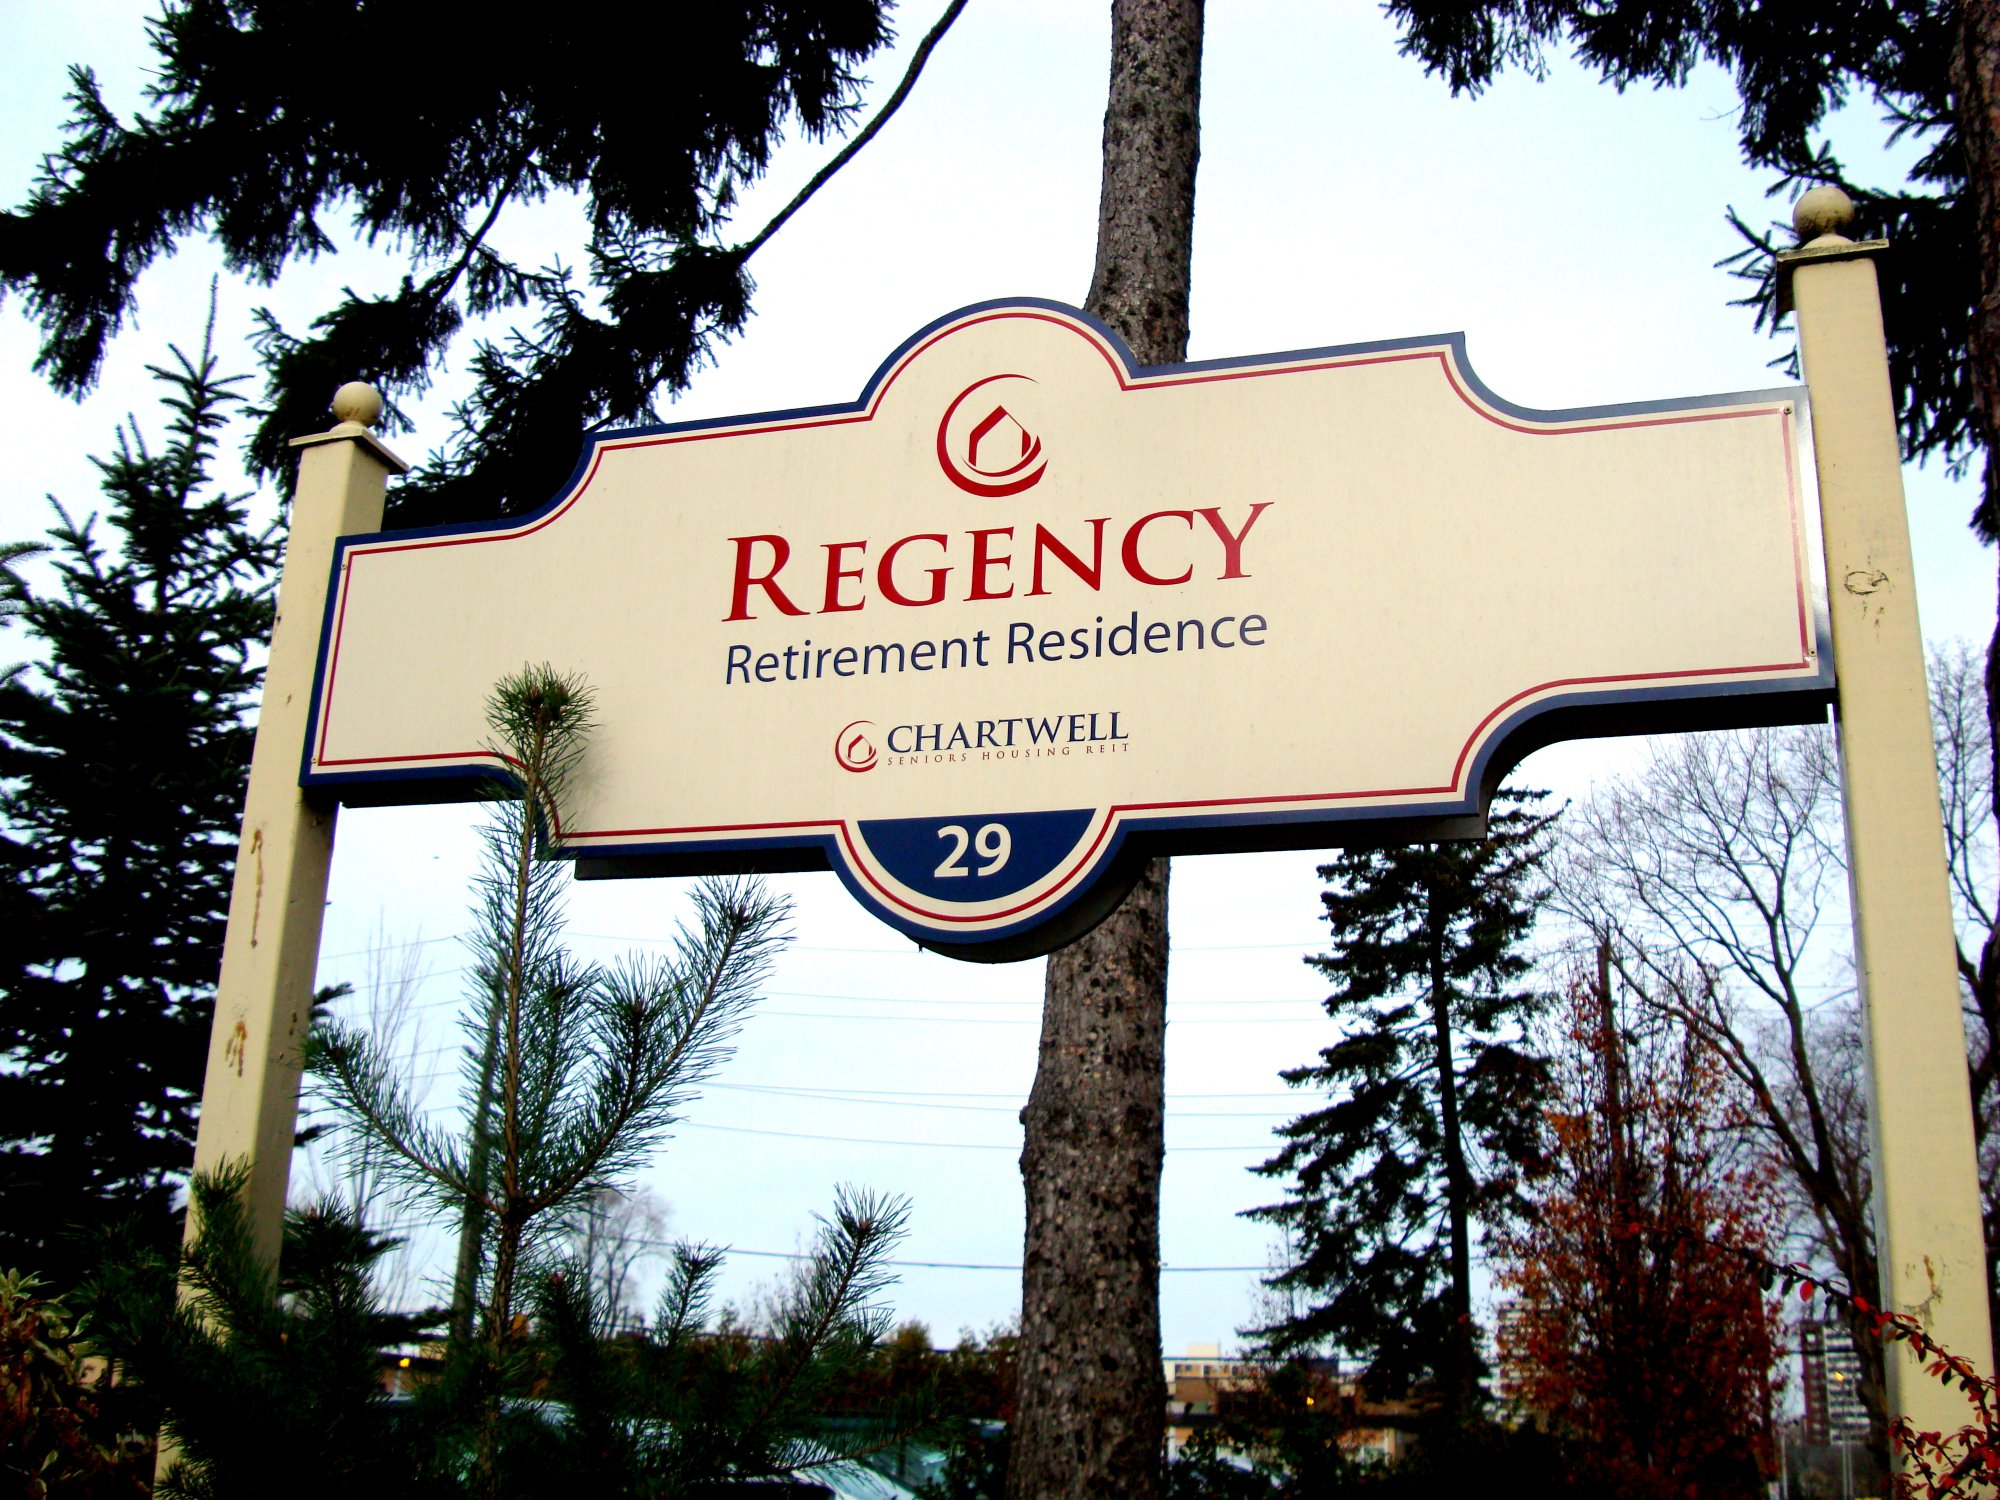 Regency Retirement Residence